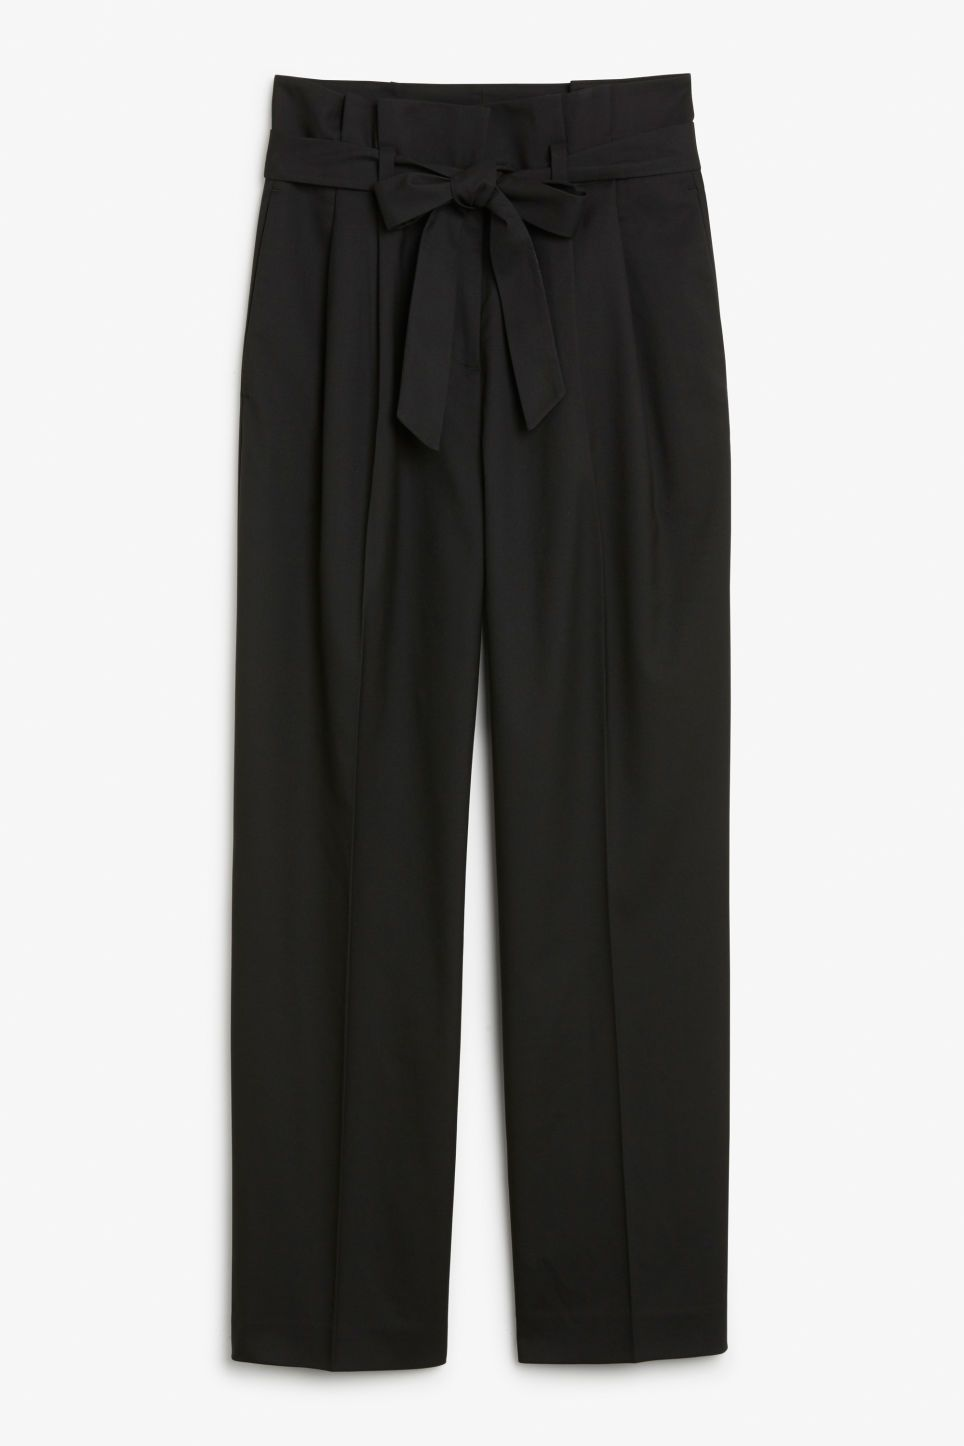 bb504e6c2c94 Söart trousers with tie details - Chic trousers crafted from a soft twill  fabric, with front pleats and a super wide-leg. Ties together with a  matching belt ...